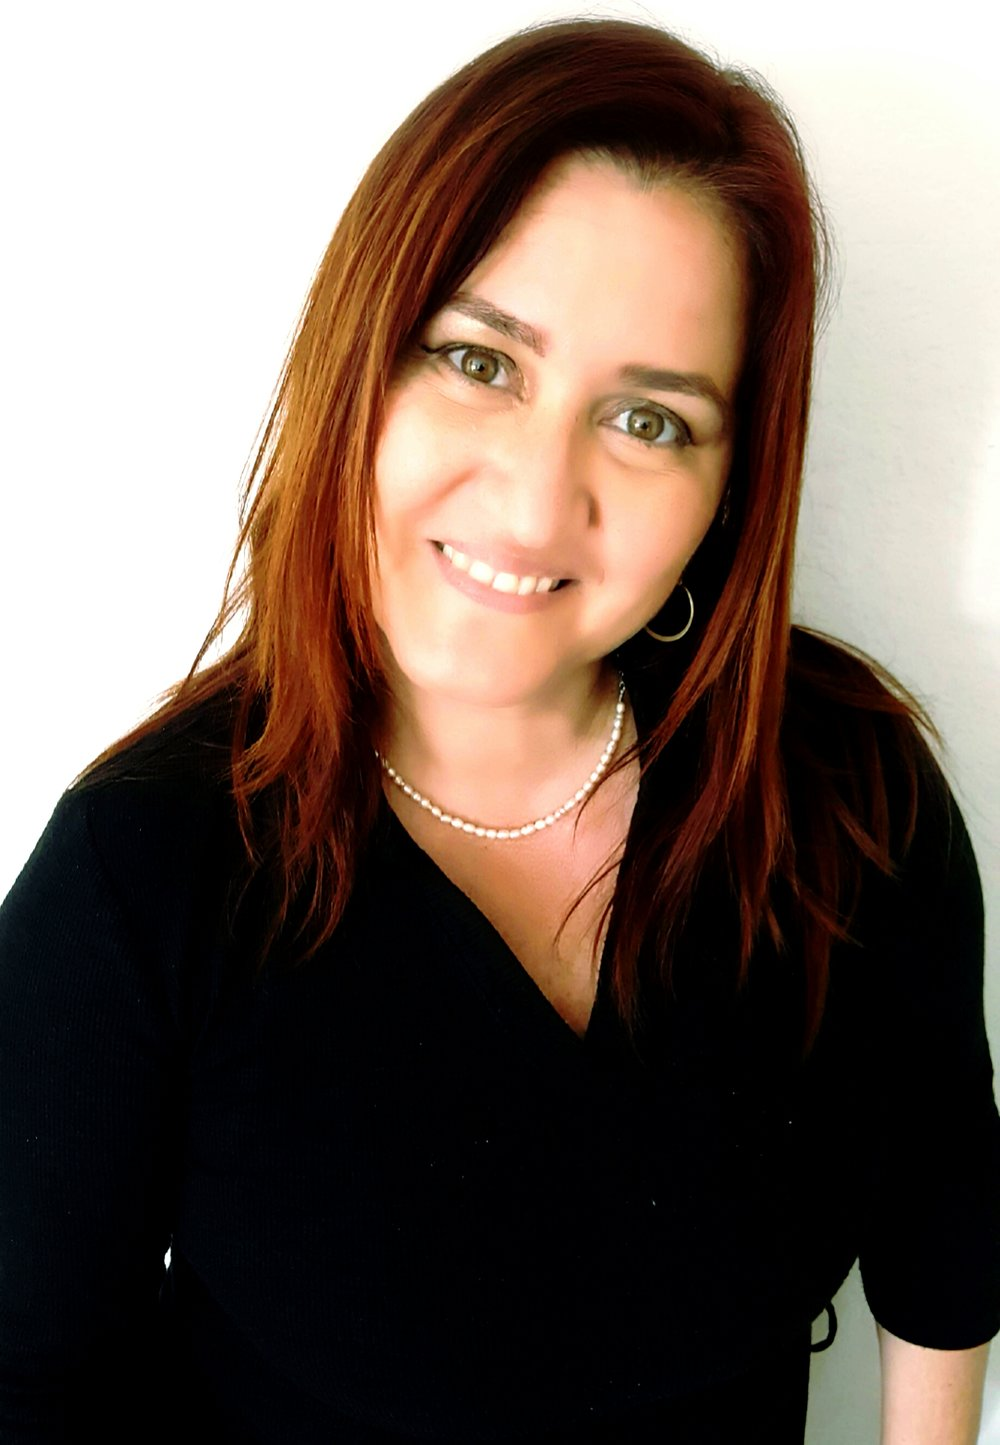 aurelina romero - producerproduction designerart direction